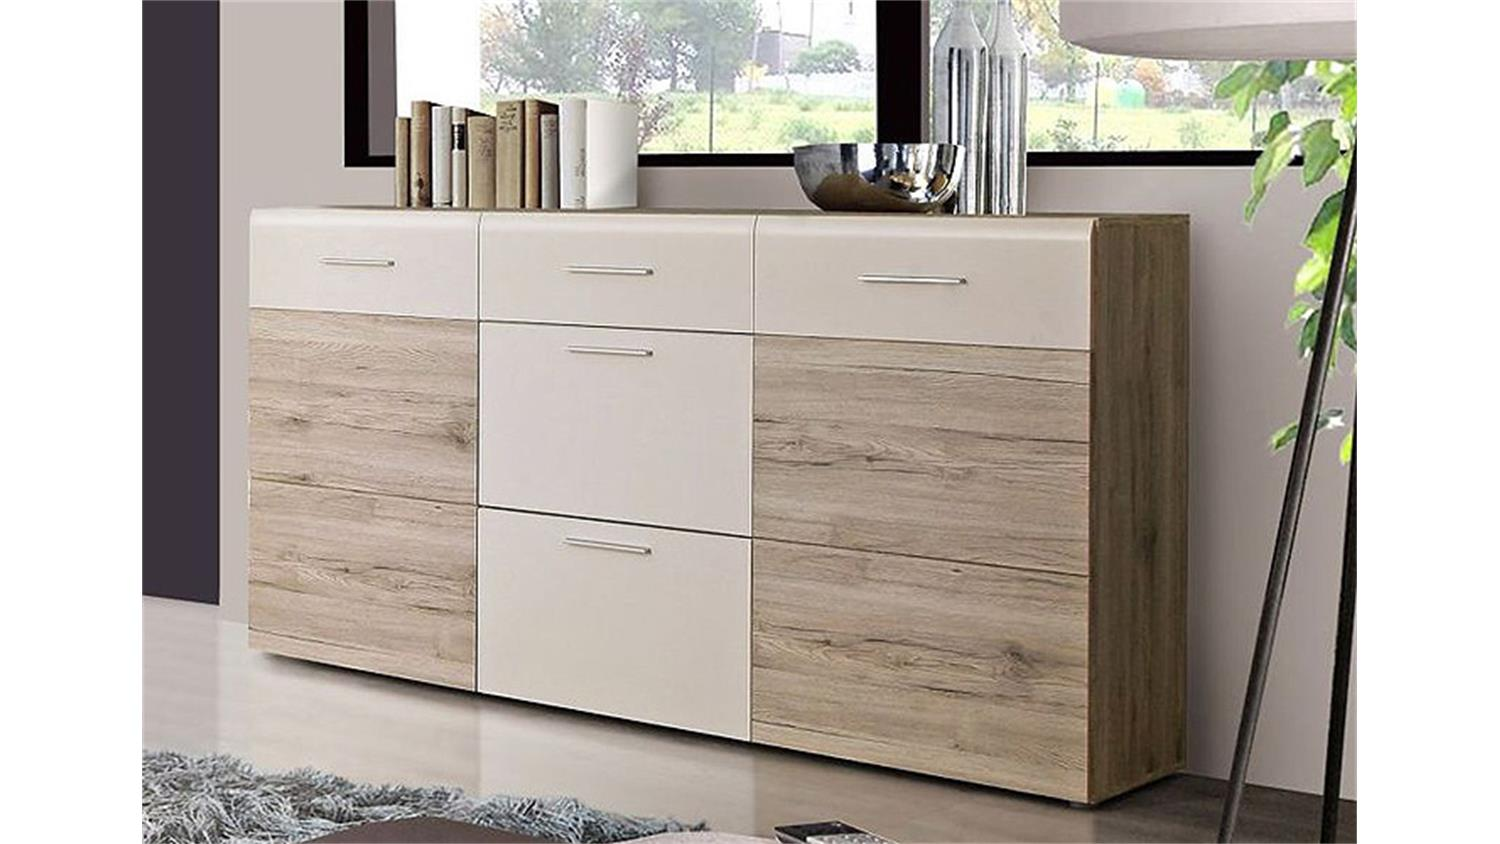 sideboard nabou anrichte kommode in sandeiche und wei. Black Bedroom Furniture Sets. Home Design Ideas